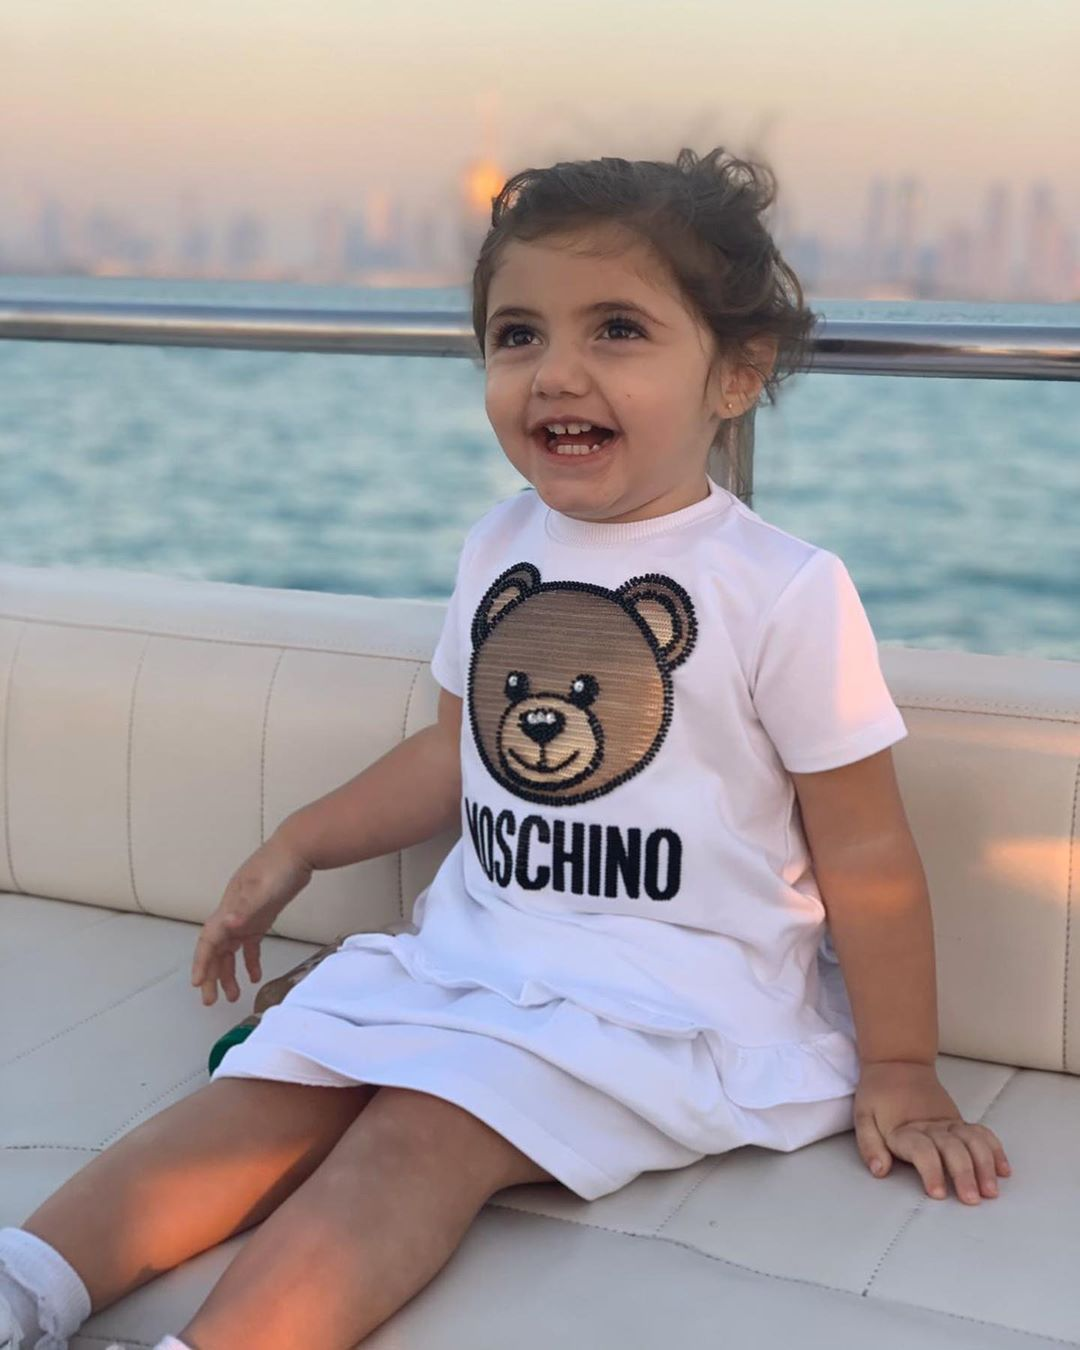 57 3 K Mentions J Aime 565 Commentaires Mila Marwah ميلا مروة Milamarwah Sur Instagram رفقاتي الحلوين Hair Color Pink I Love You Signs Baby Onesies